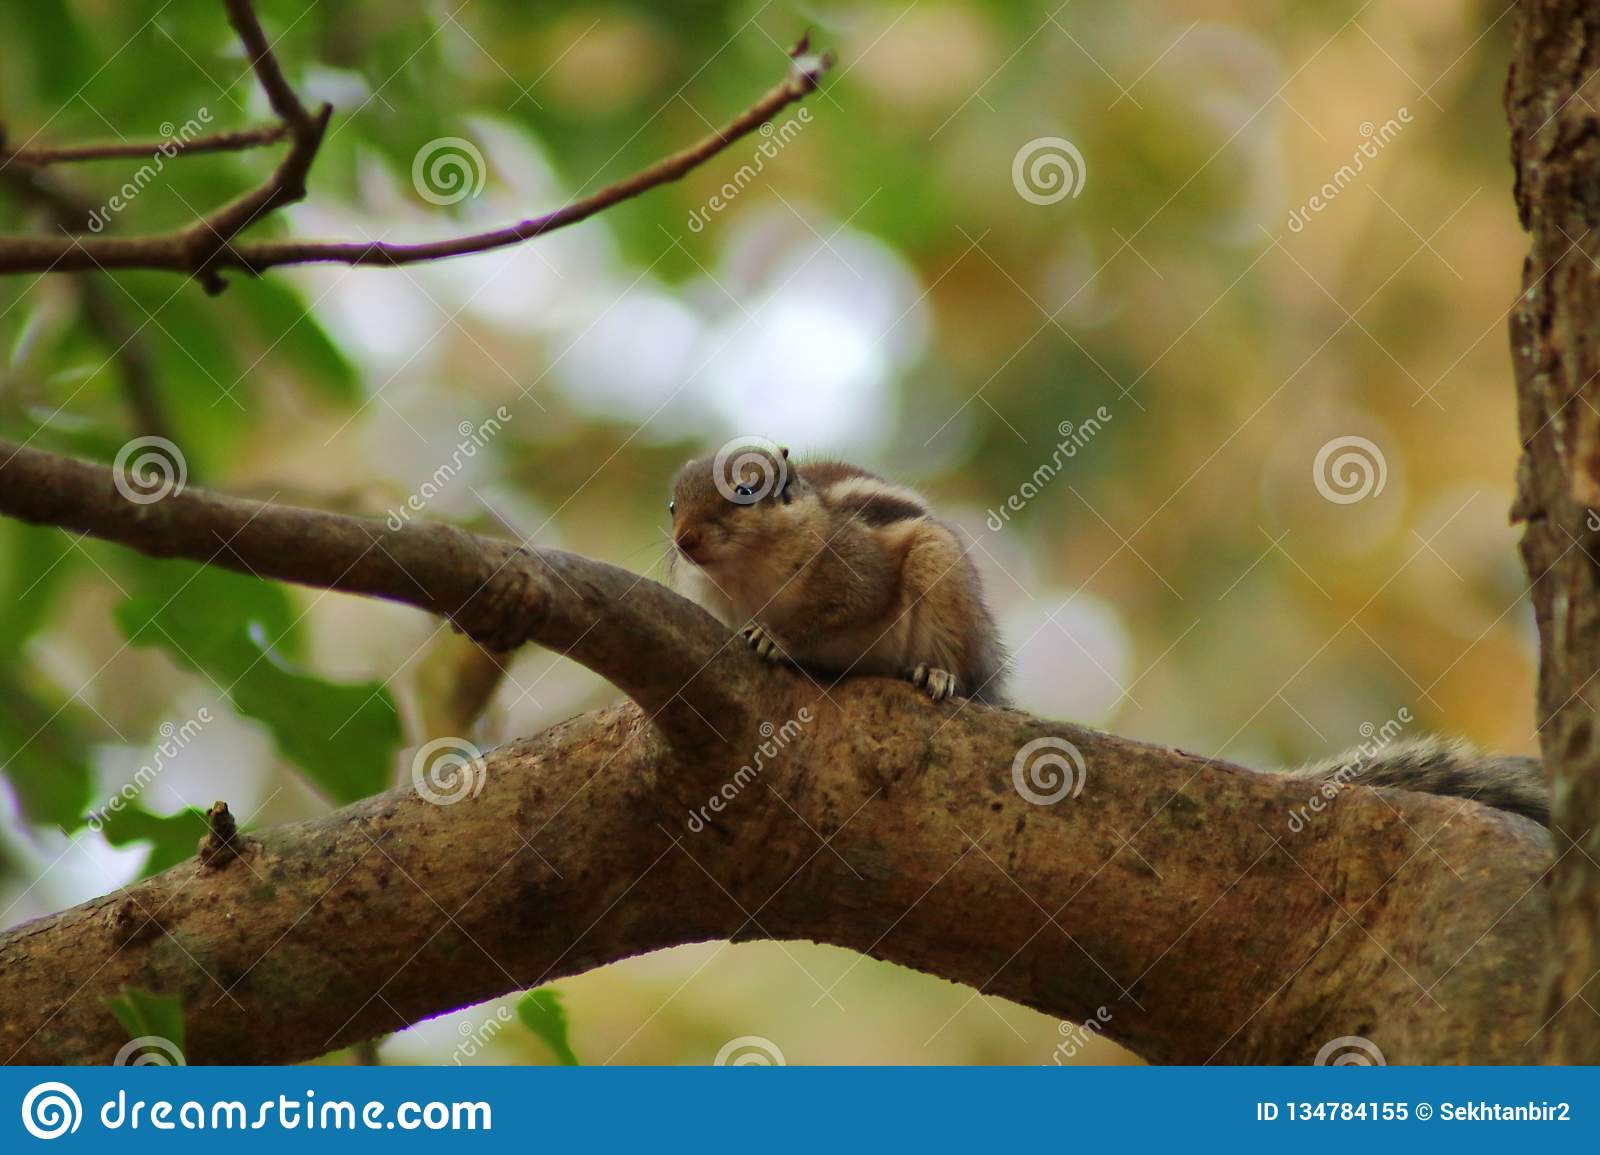 The Squirrel On The Tree Wallpaper